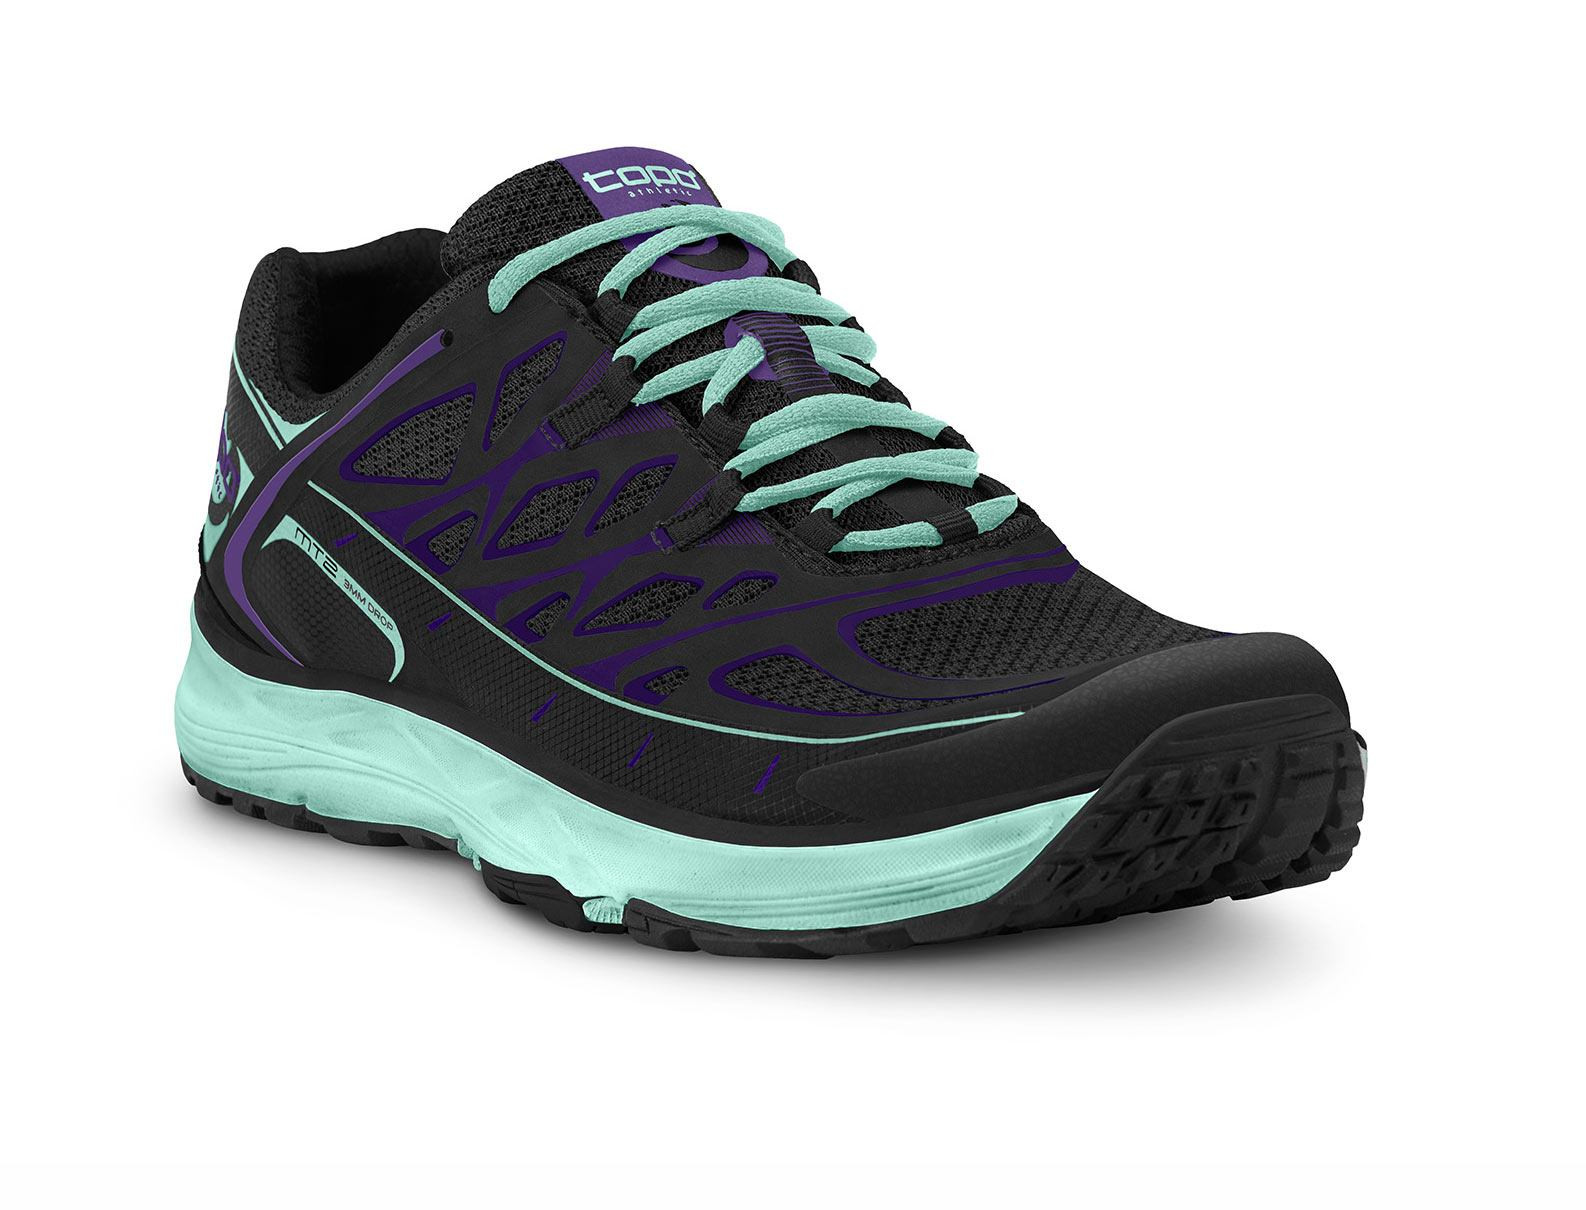 Trail Running Shoe With Roomy Toe Box